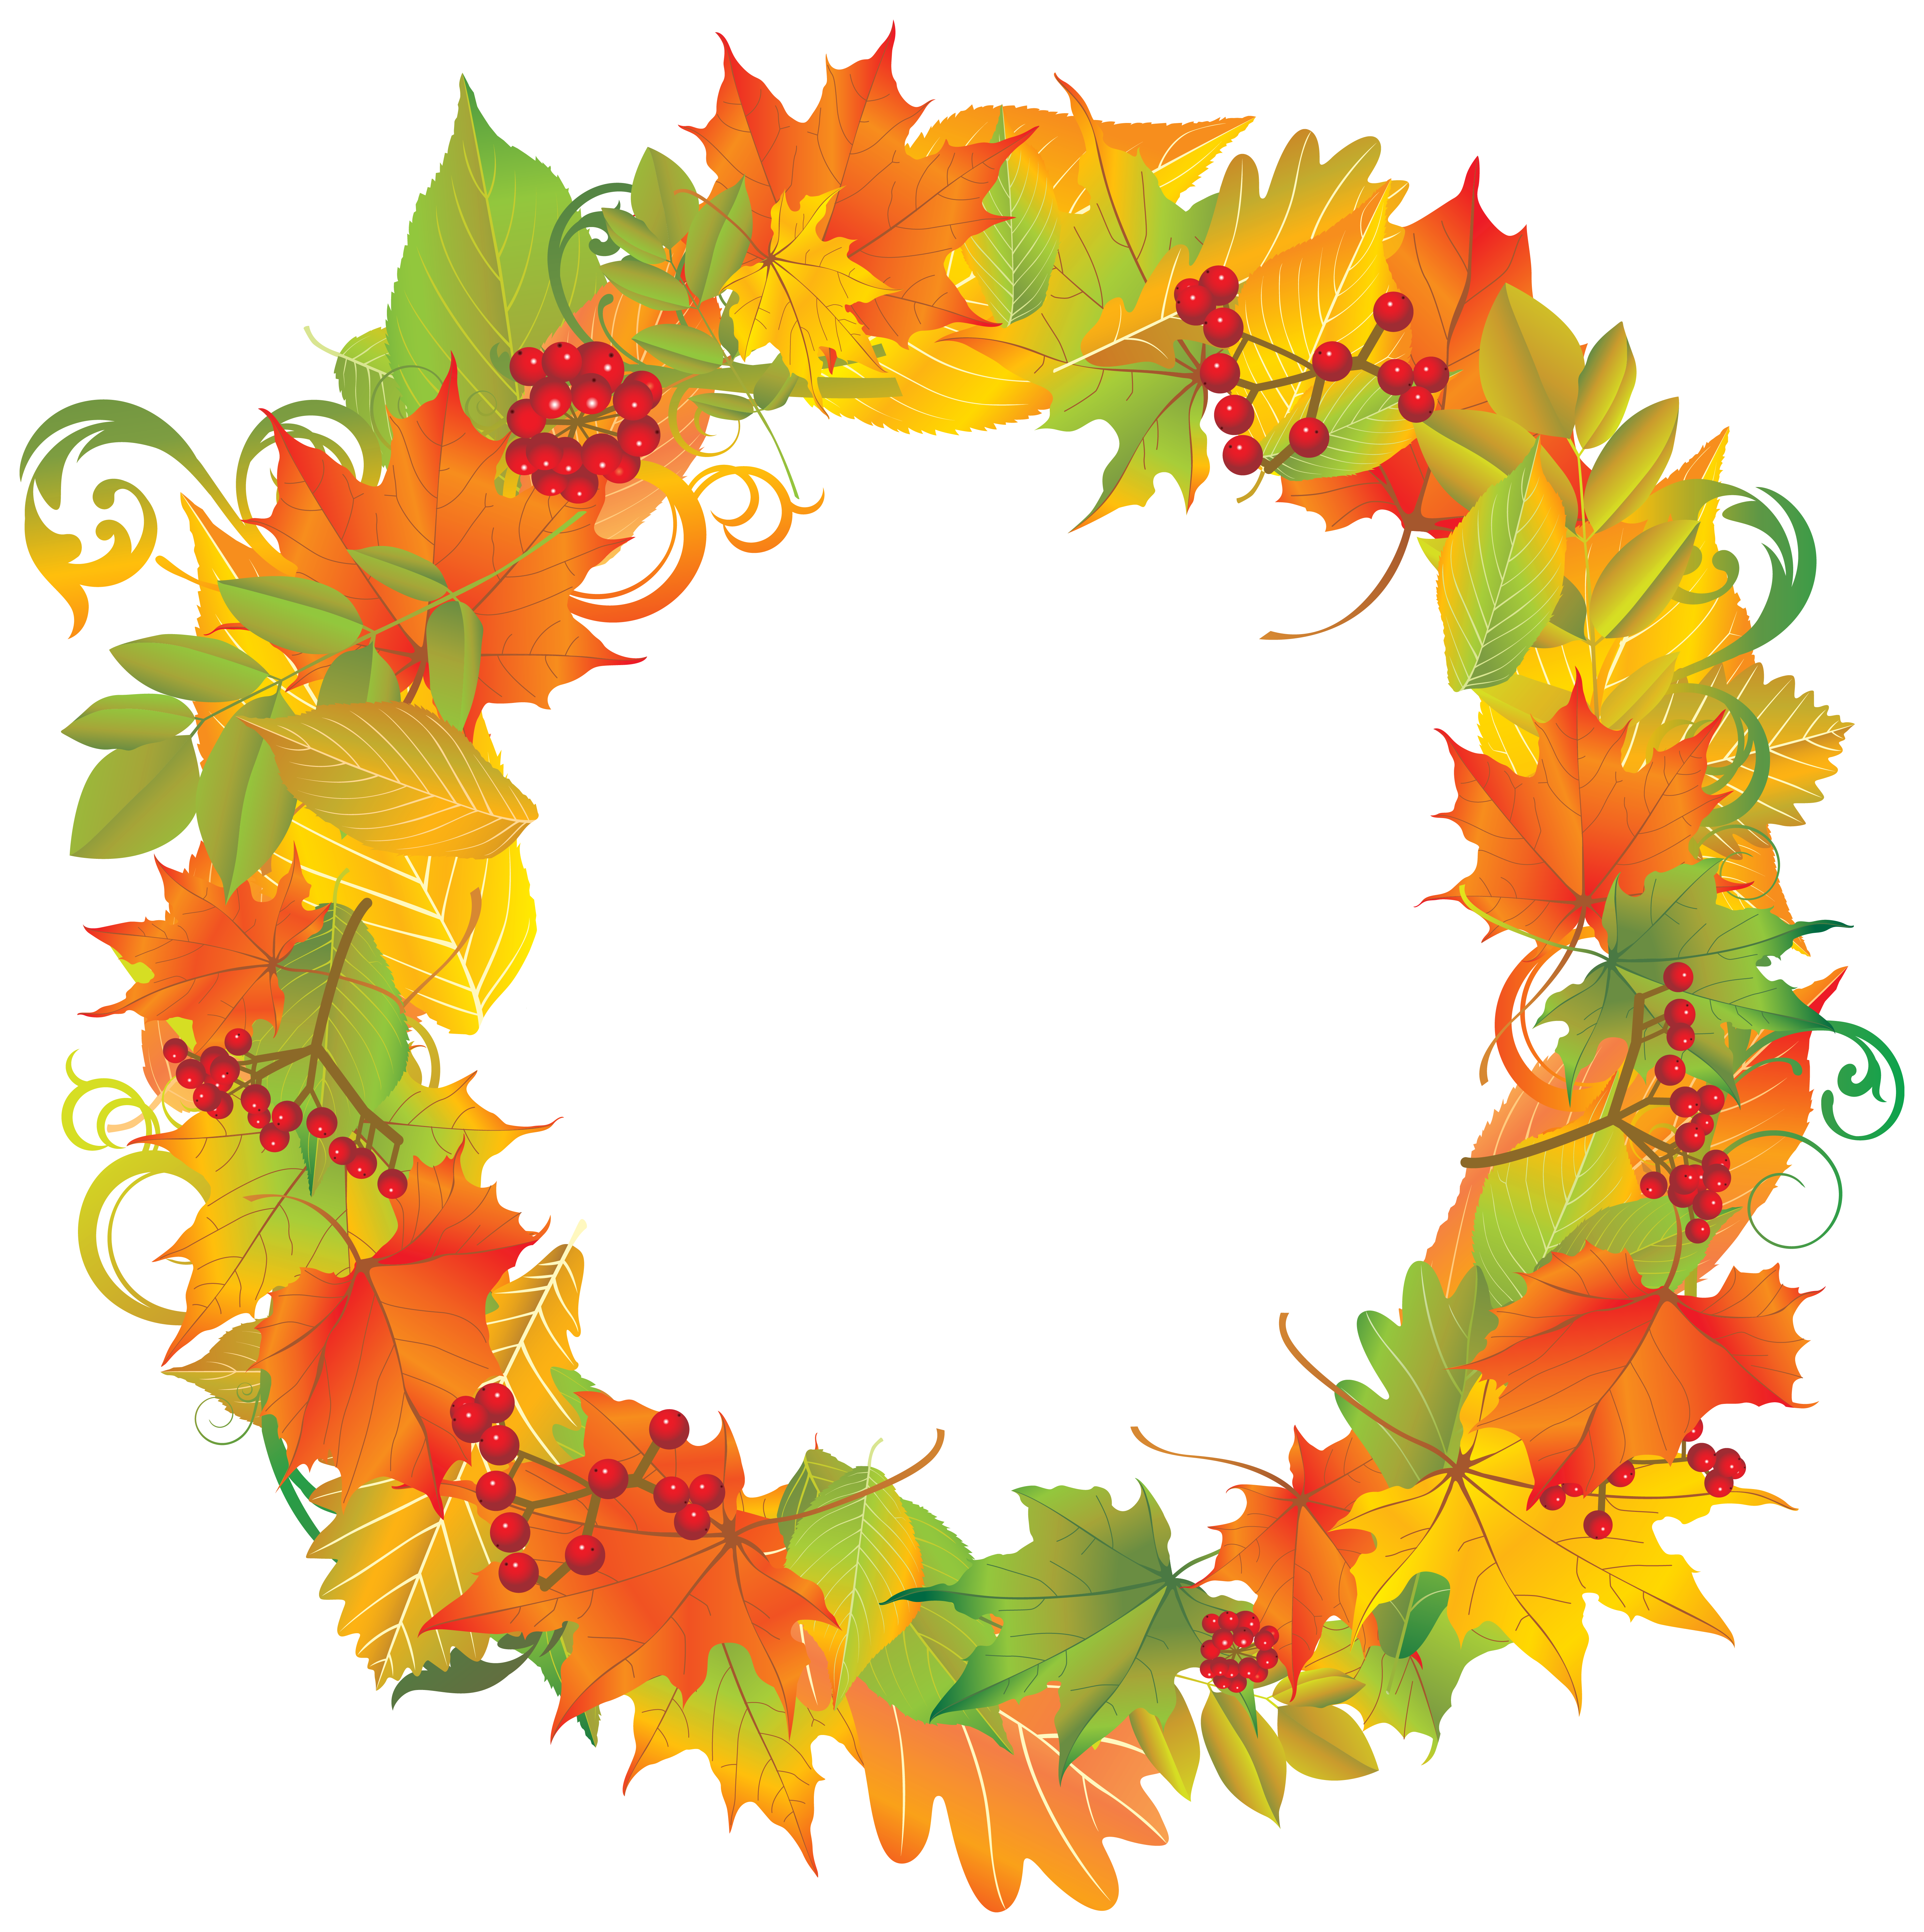 Fall wreath png. Autumn clipart image gallery